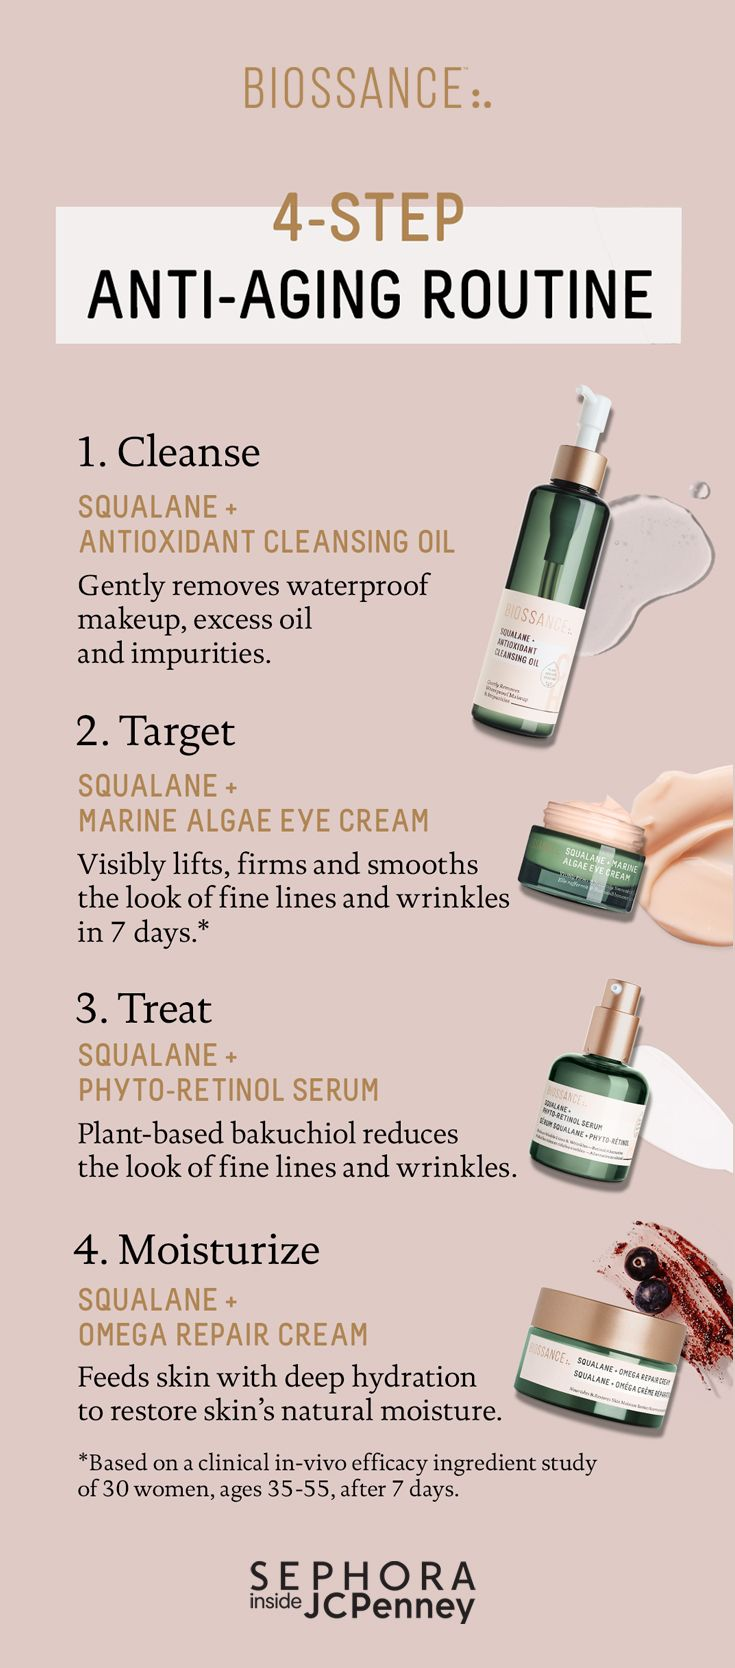 Products For Anti Aging Skin Care Routine Steps Body Skin Care Beauty Skin Care Routine